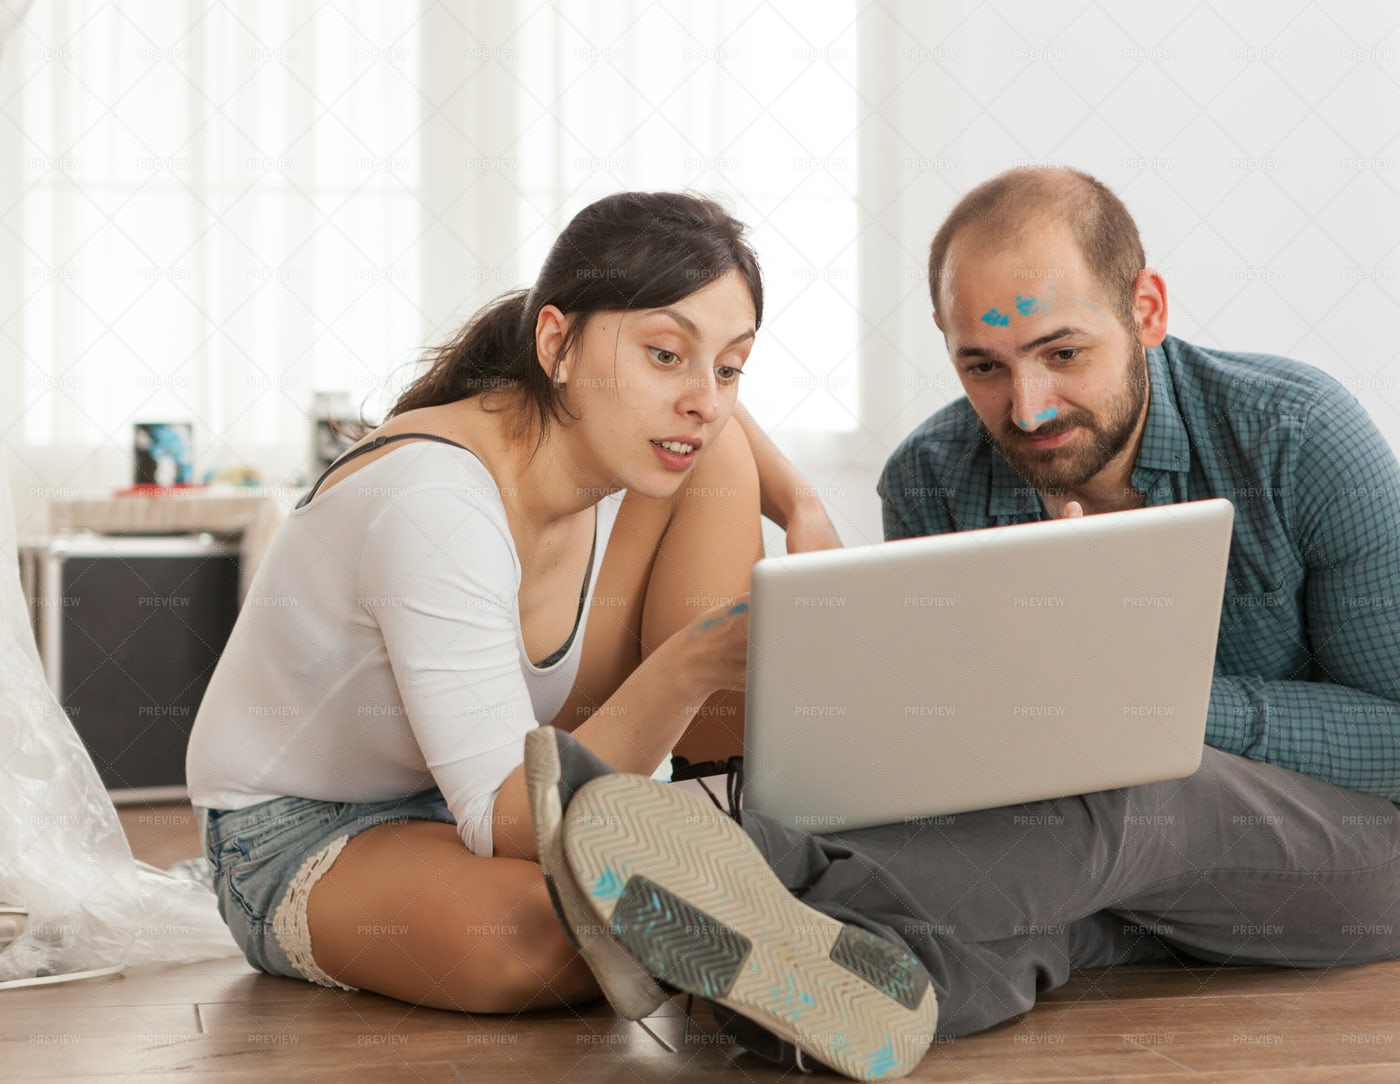 Browsing While Home Decorating: Stock Photos